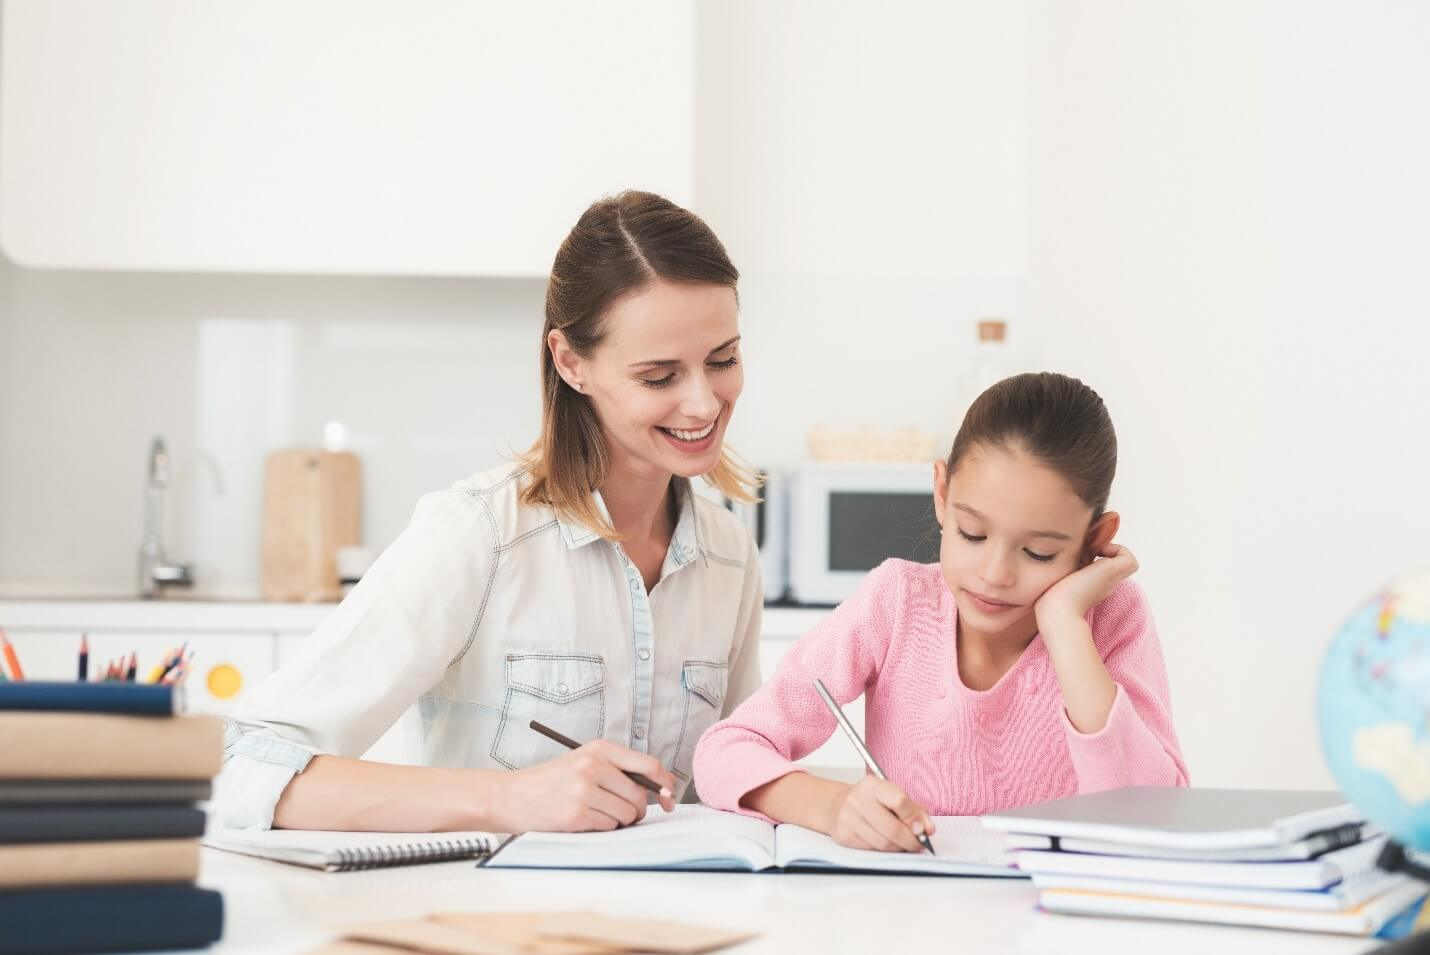 Best Homework Tips To Cut Study Time In Half